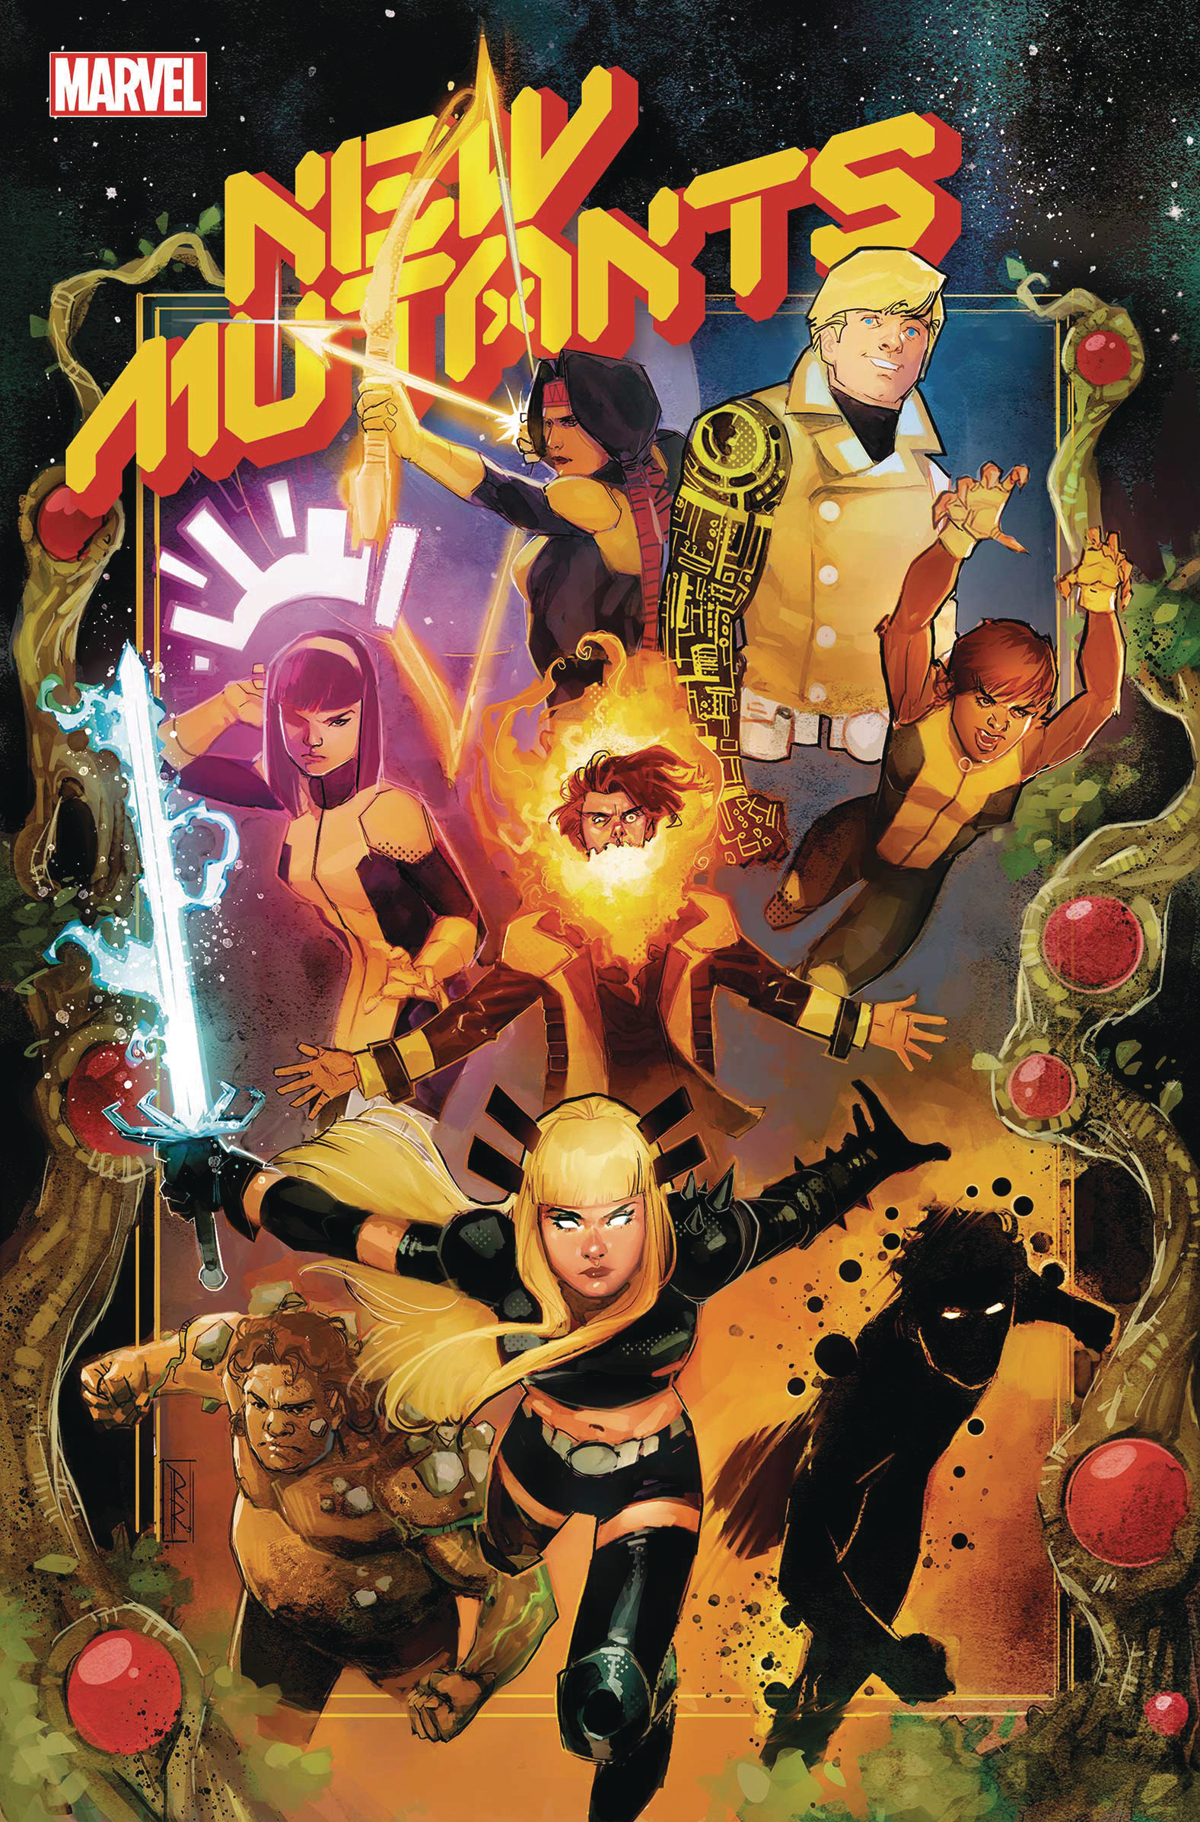 NEW MUTANTS #1 POSTER